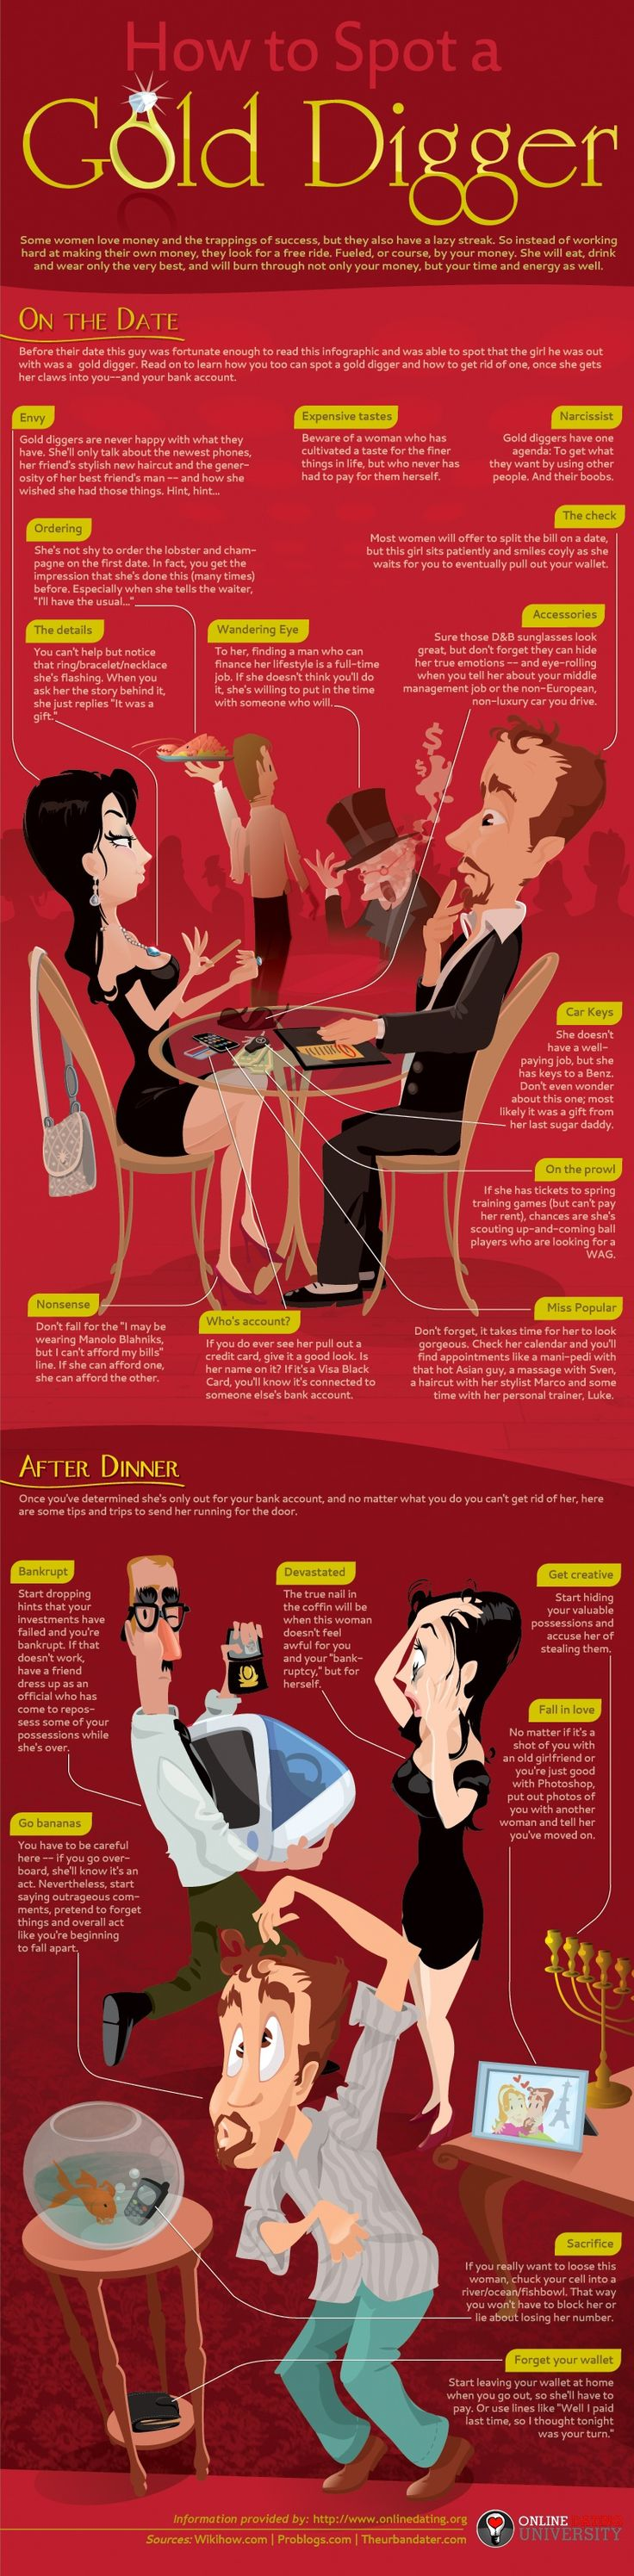 Gold Digger - Dating http://www.twosugars.com #online dating infographics #infographics on dating #best dating tips for guys